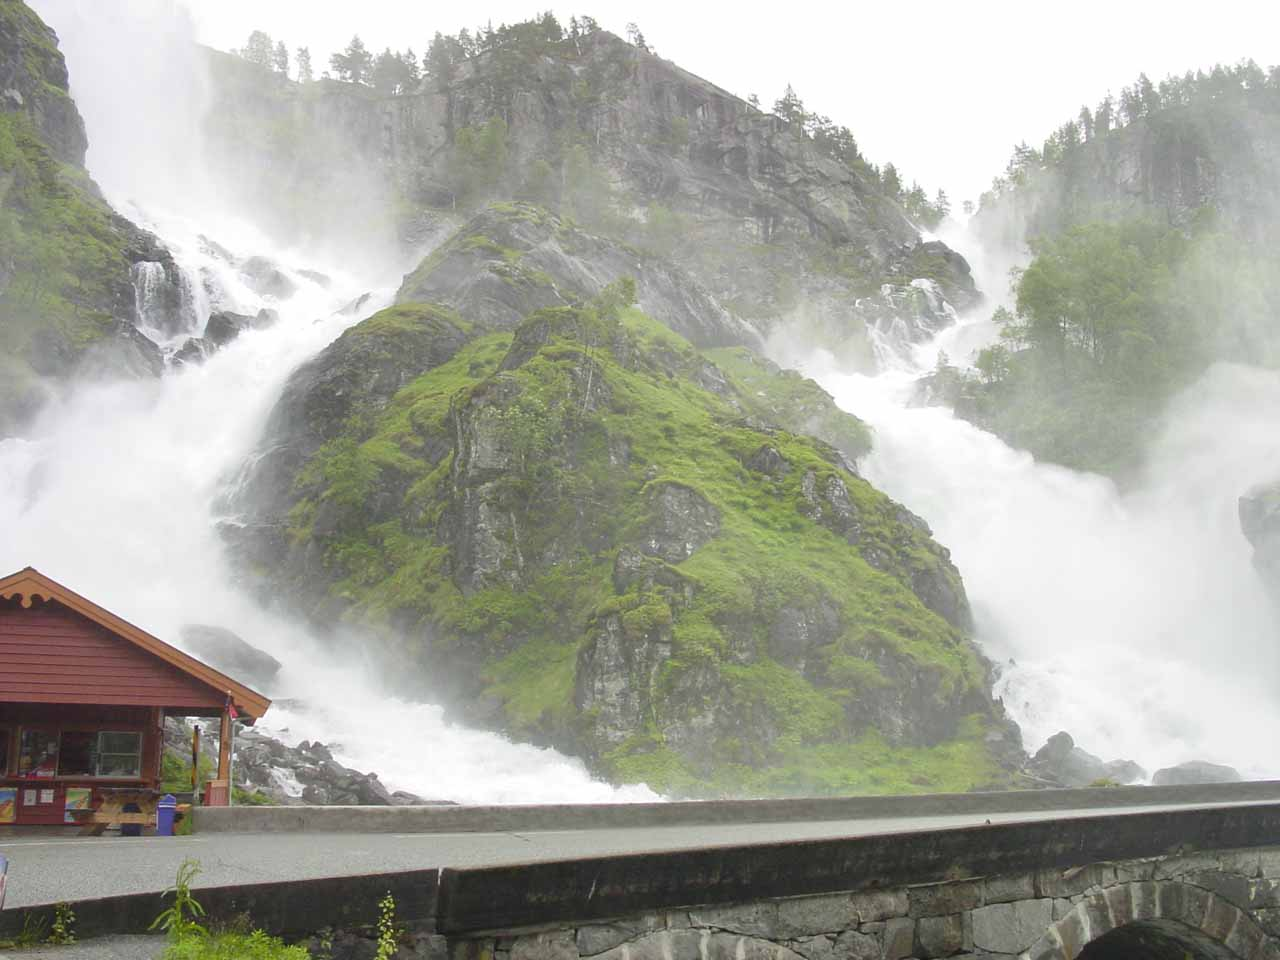 Not far to the northeast of Langfoss was the Odda Valley (Oddadalen), which featured numerous major waterfalls, including Låtefossen, which is pictured here